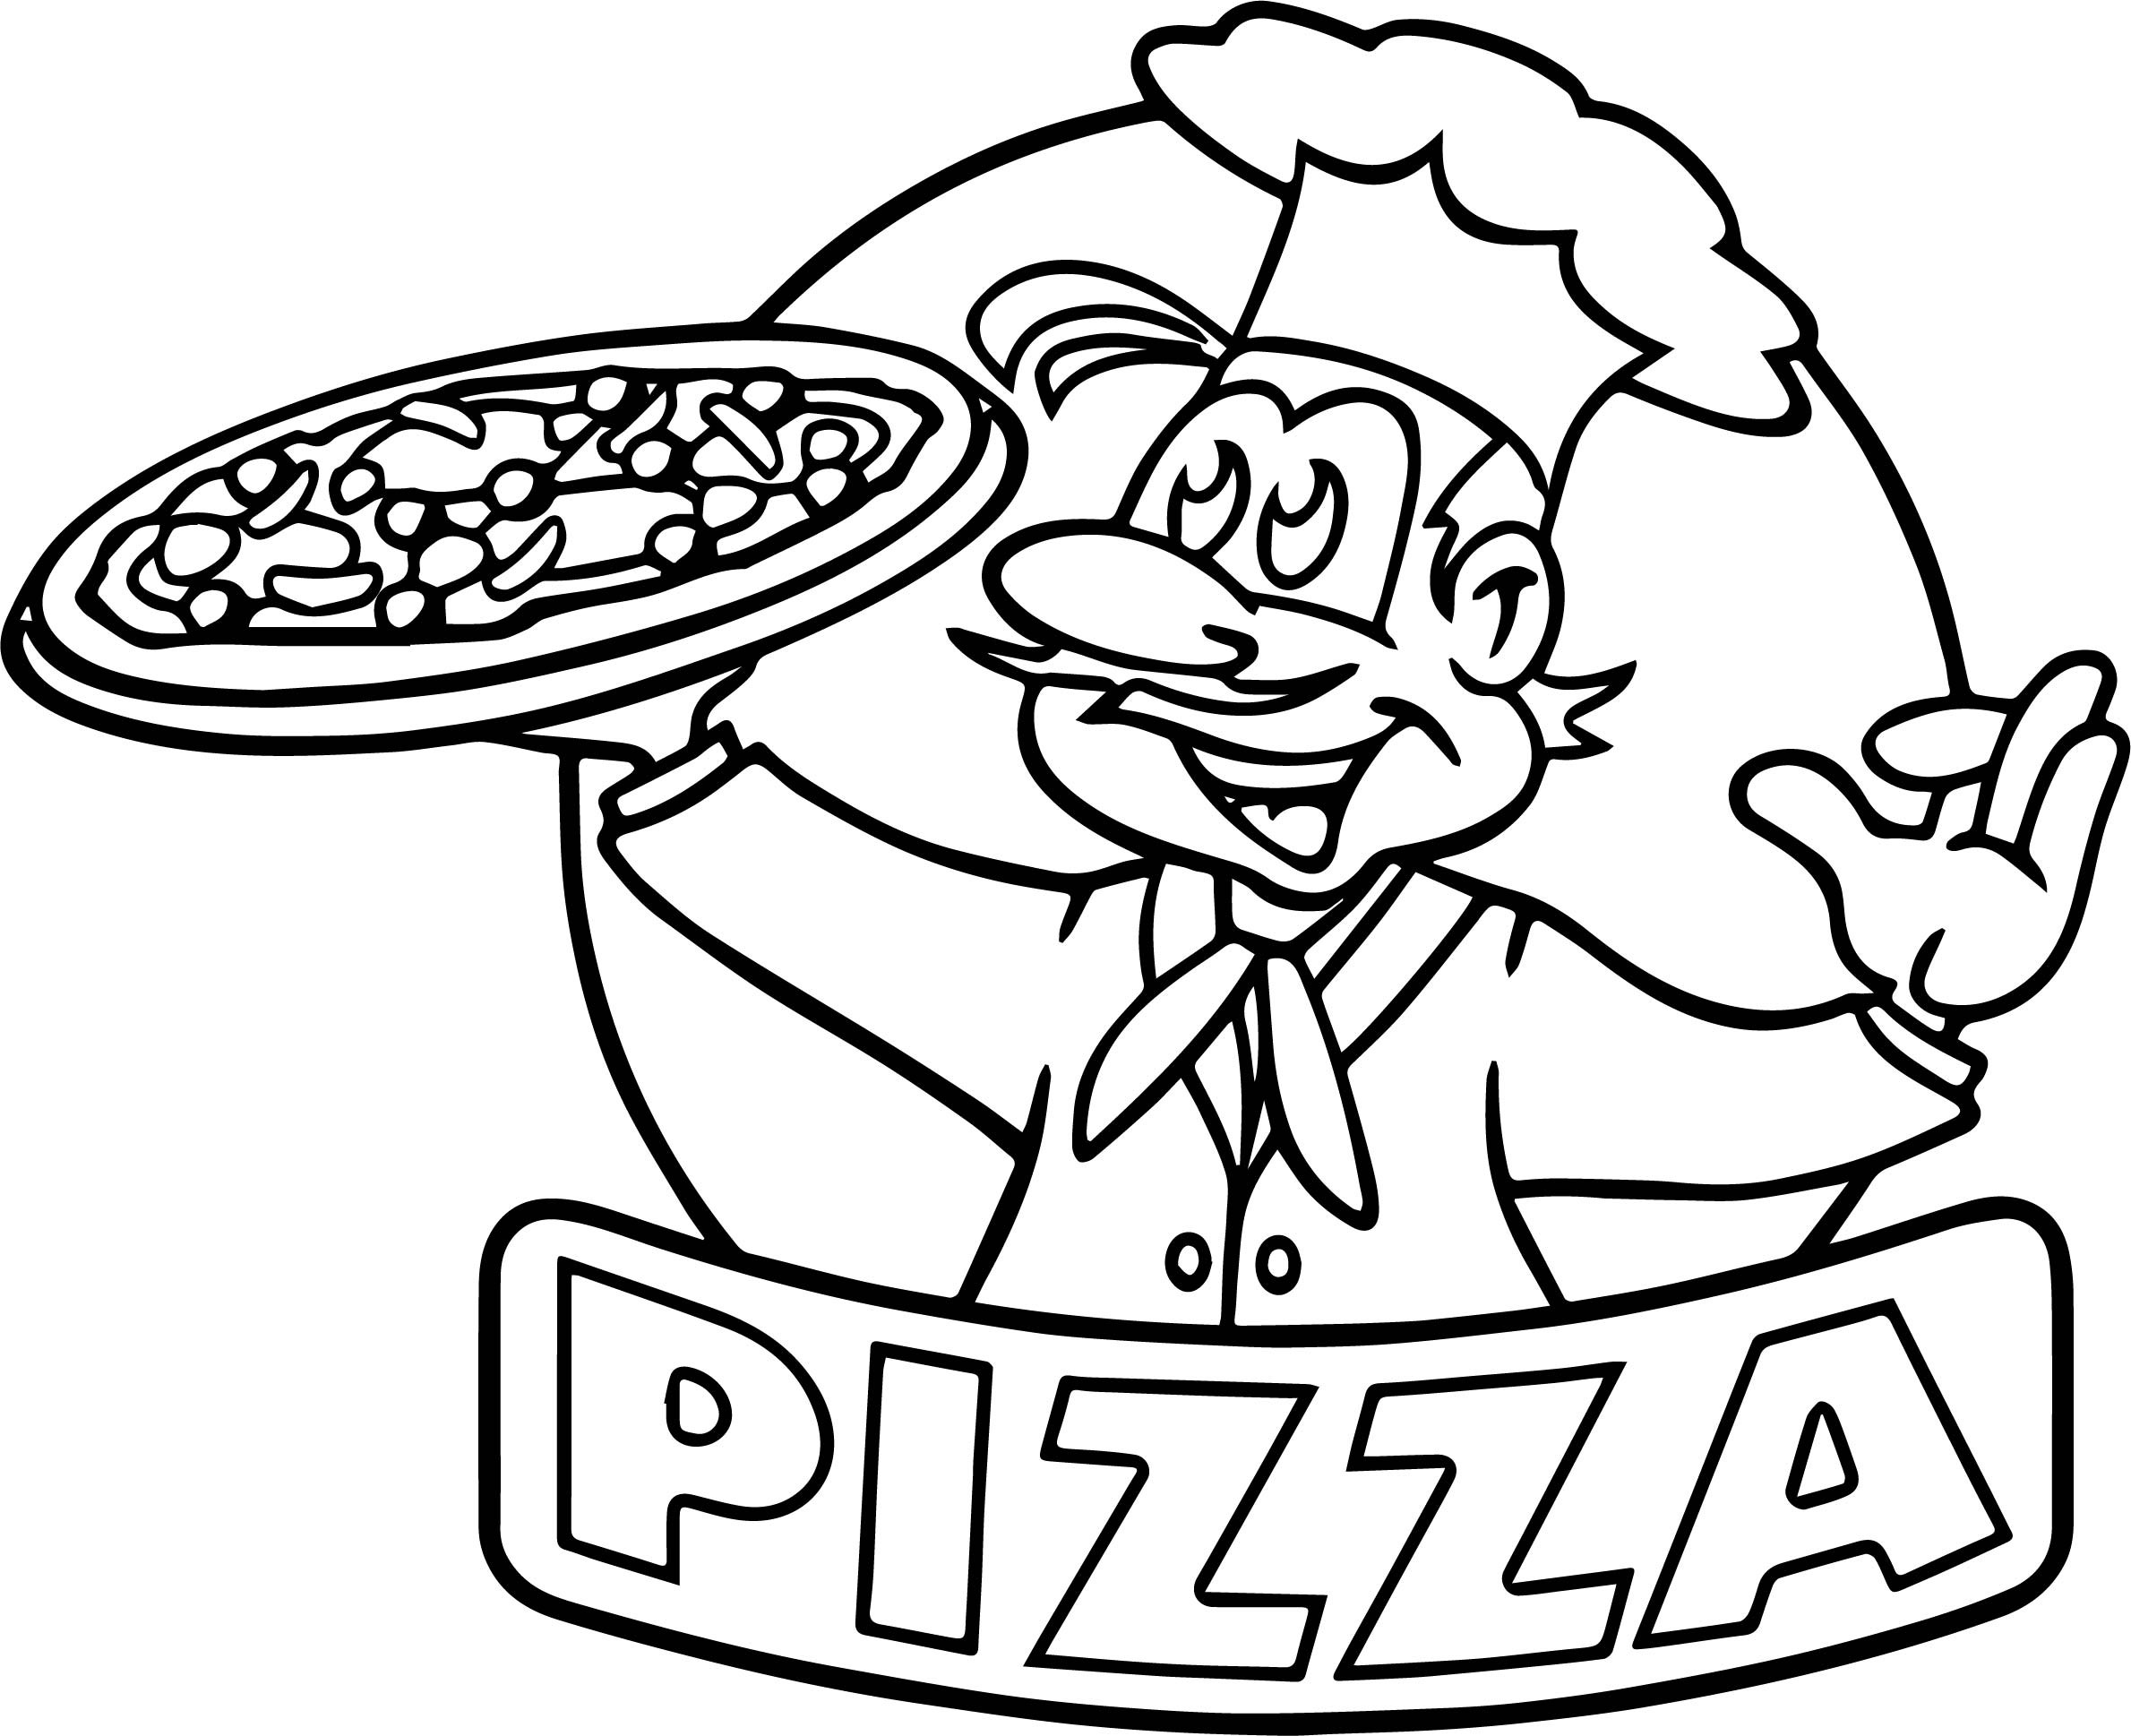 2379x1938 Coloring Page Pizza Free Draw To Color